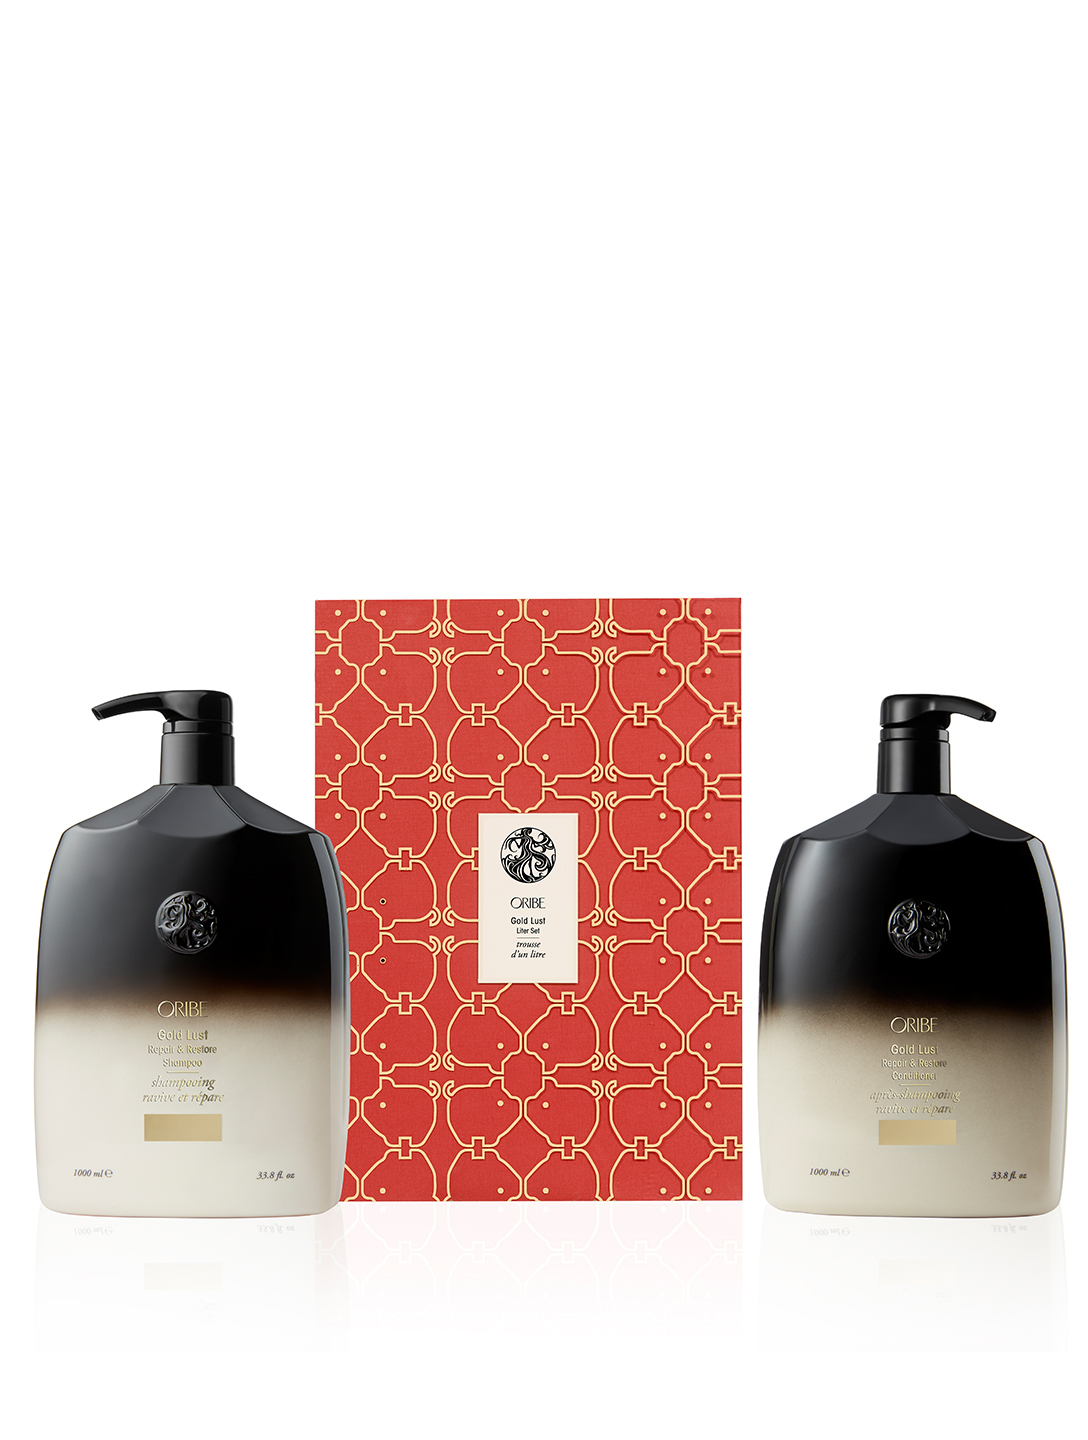 ORIBE Gold Lust Litre Set - Chinese New Year Edition Beauty